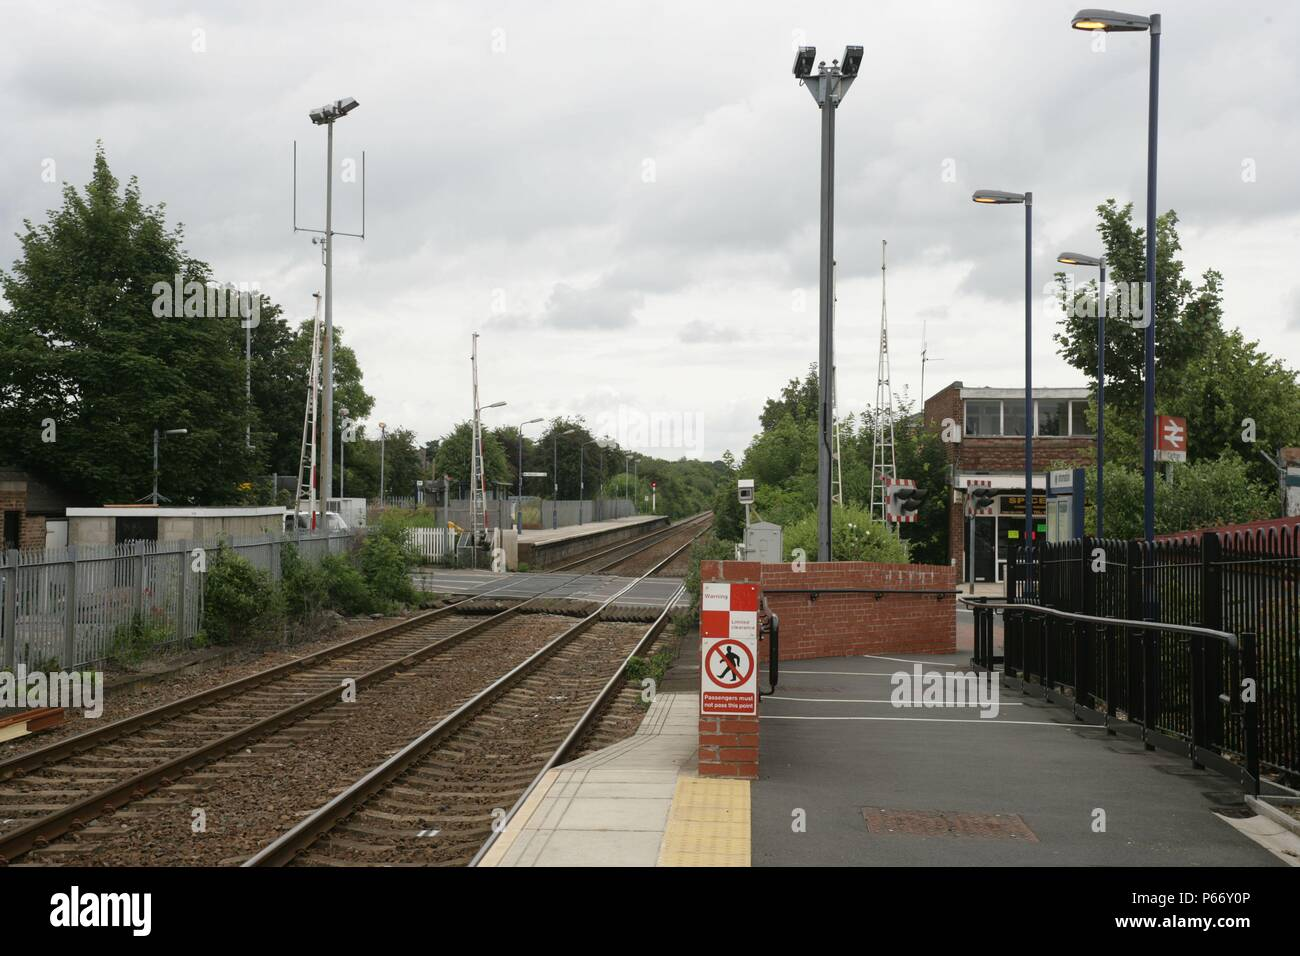 Entrance ramp, level crossing and CCTV cameras at Carlton station, Nottinghamshire. 2007 - Stock Image